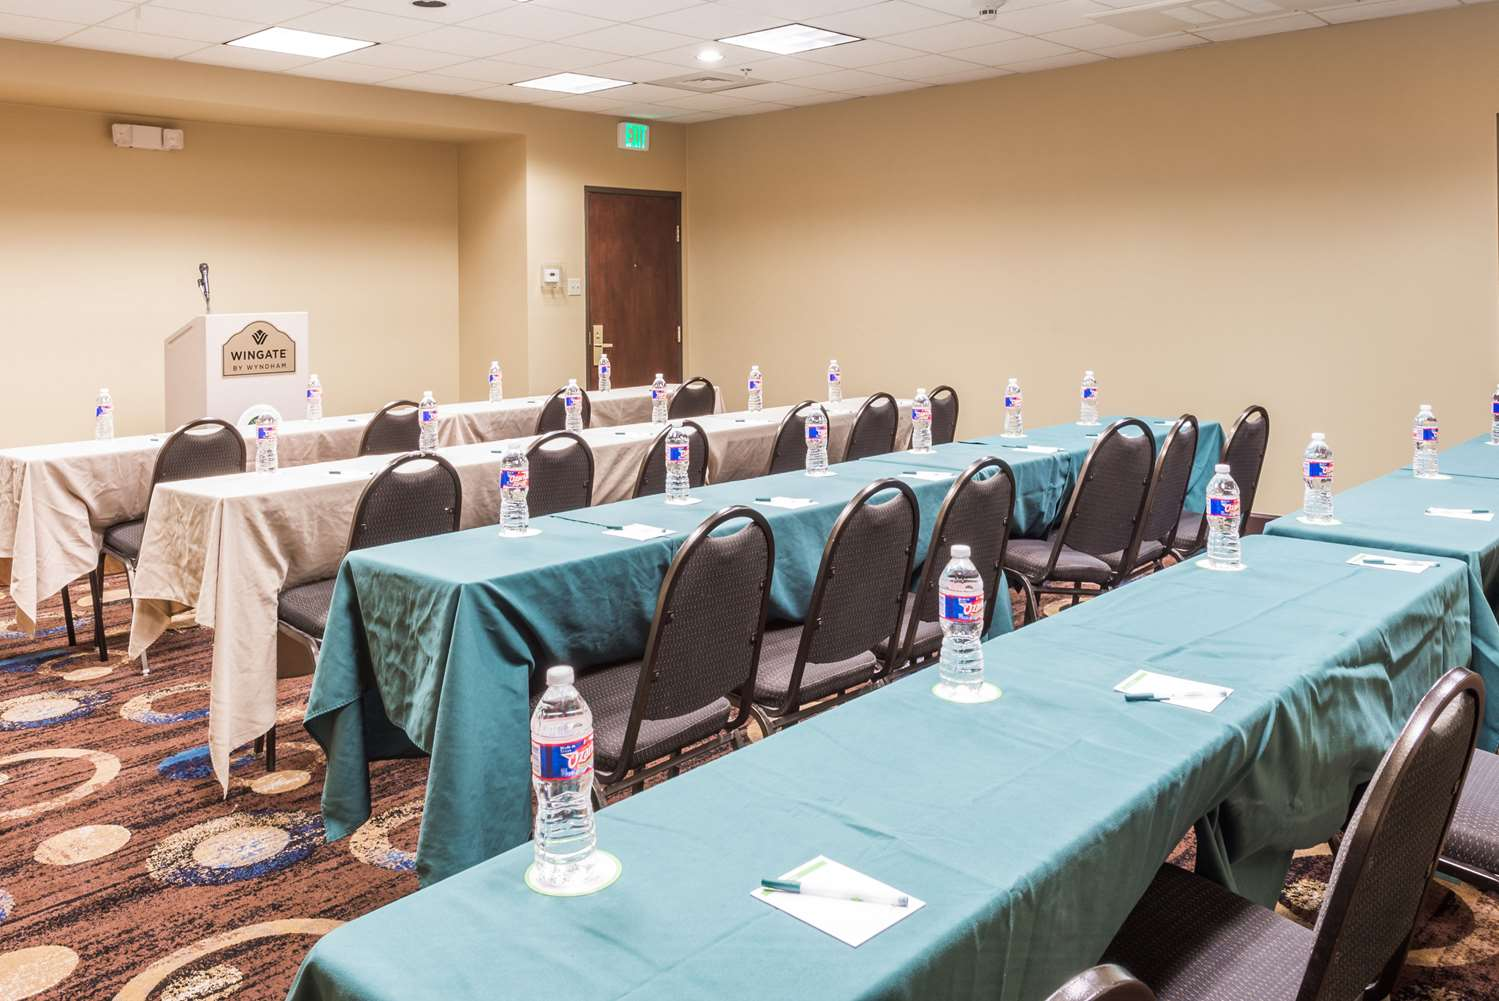 Meeting Facilities - Wingate by Wyndham Hotel Sulphur